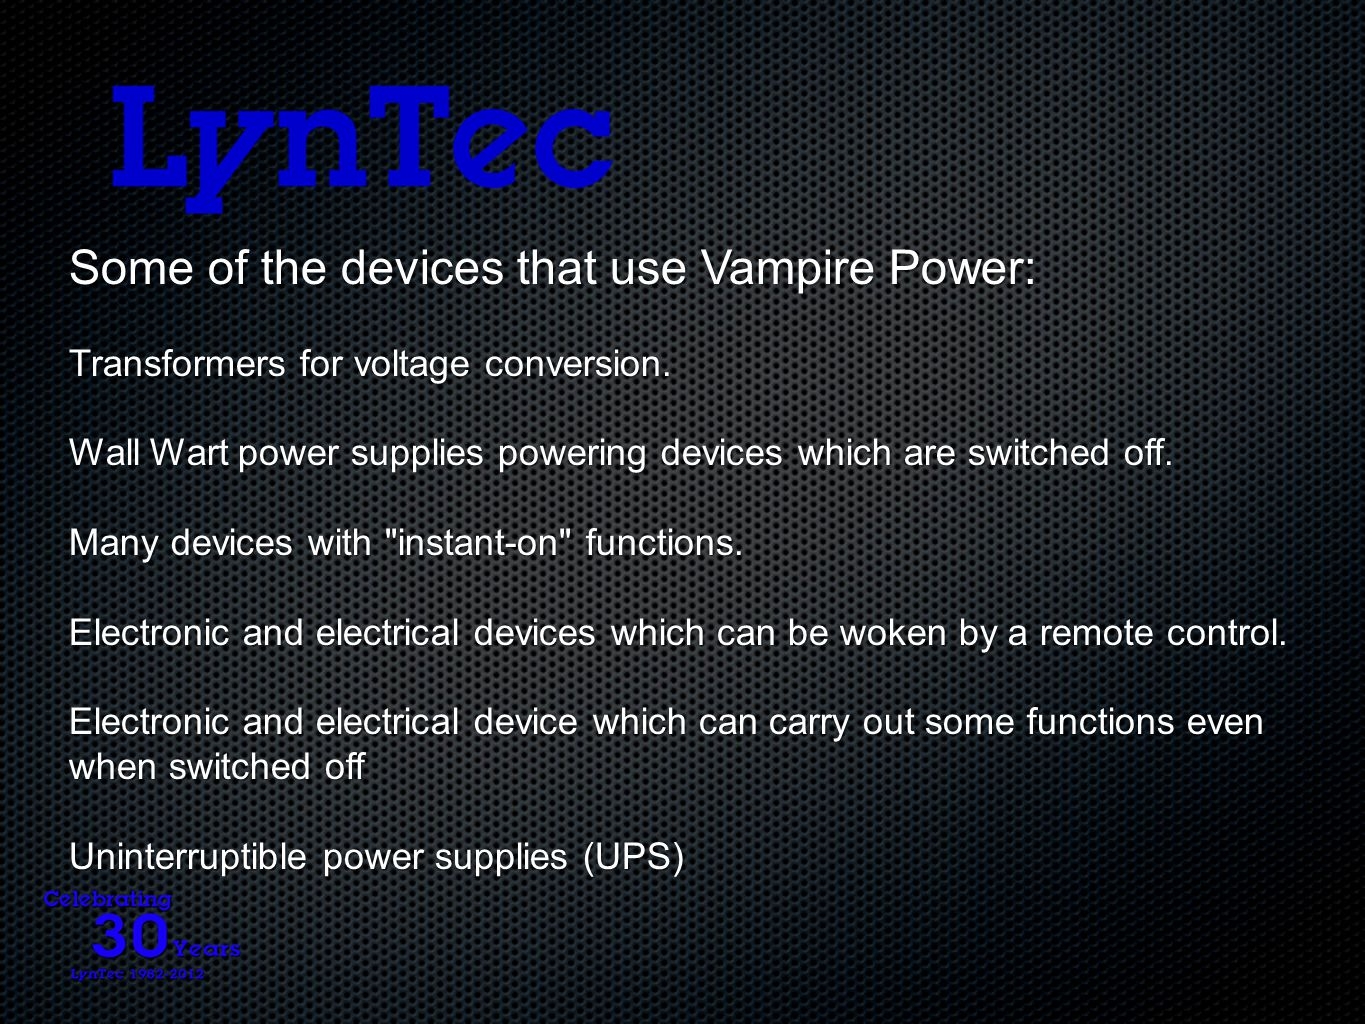 Some of the devices that use Vampire Power: Transformers for voltage conversion.